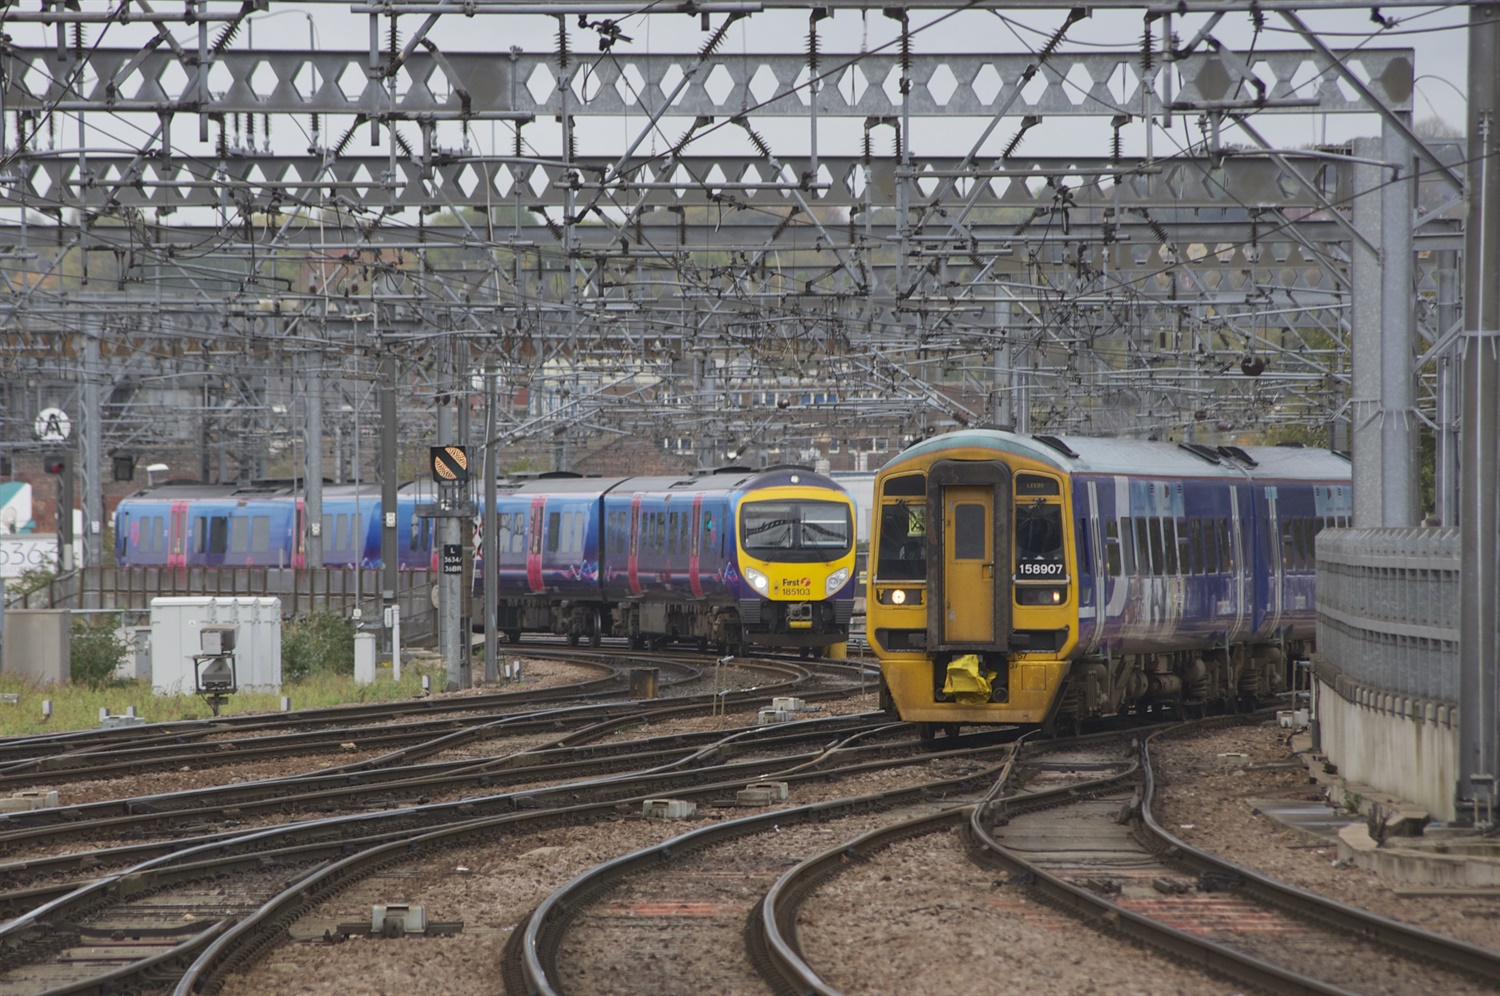 Transport Committee inquiry seeks evidence on rail franchising